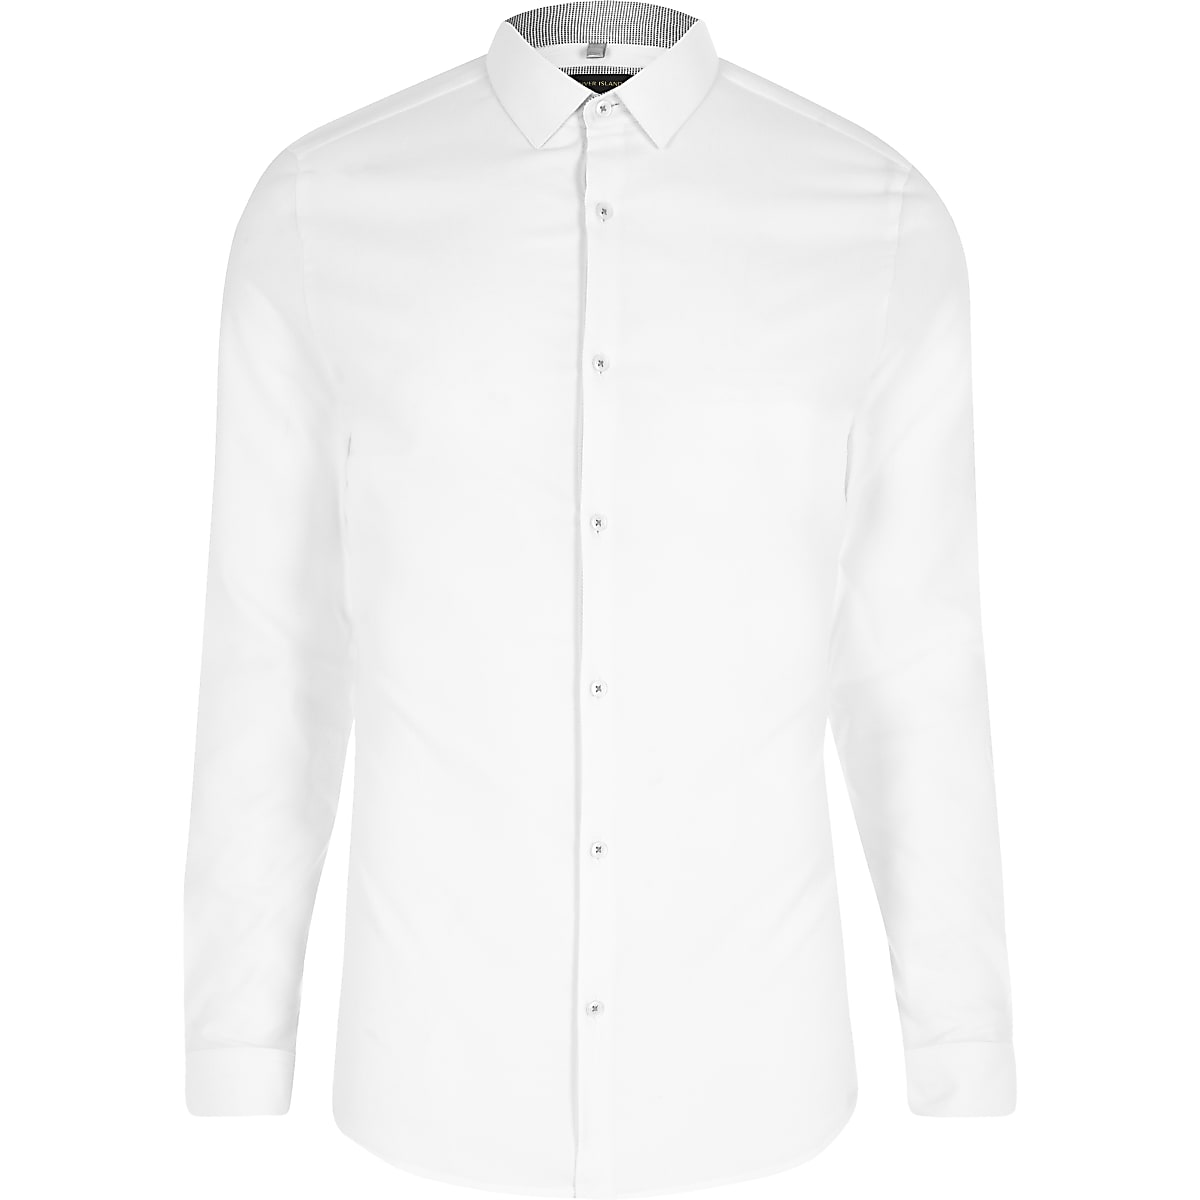 ee9a20859e5 White textured semi cutaway skinny fit shirt